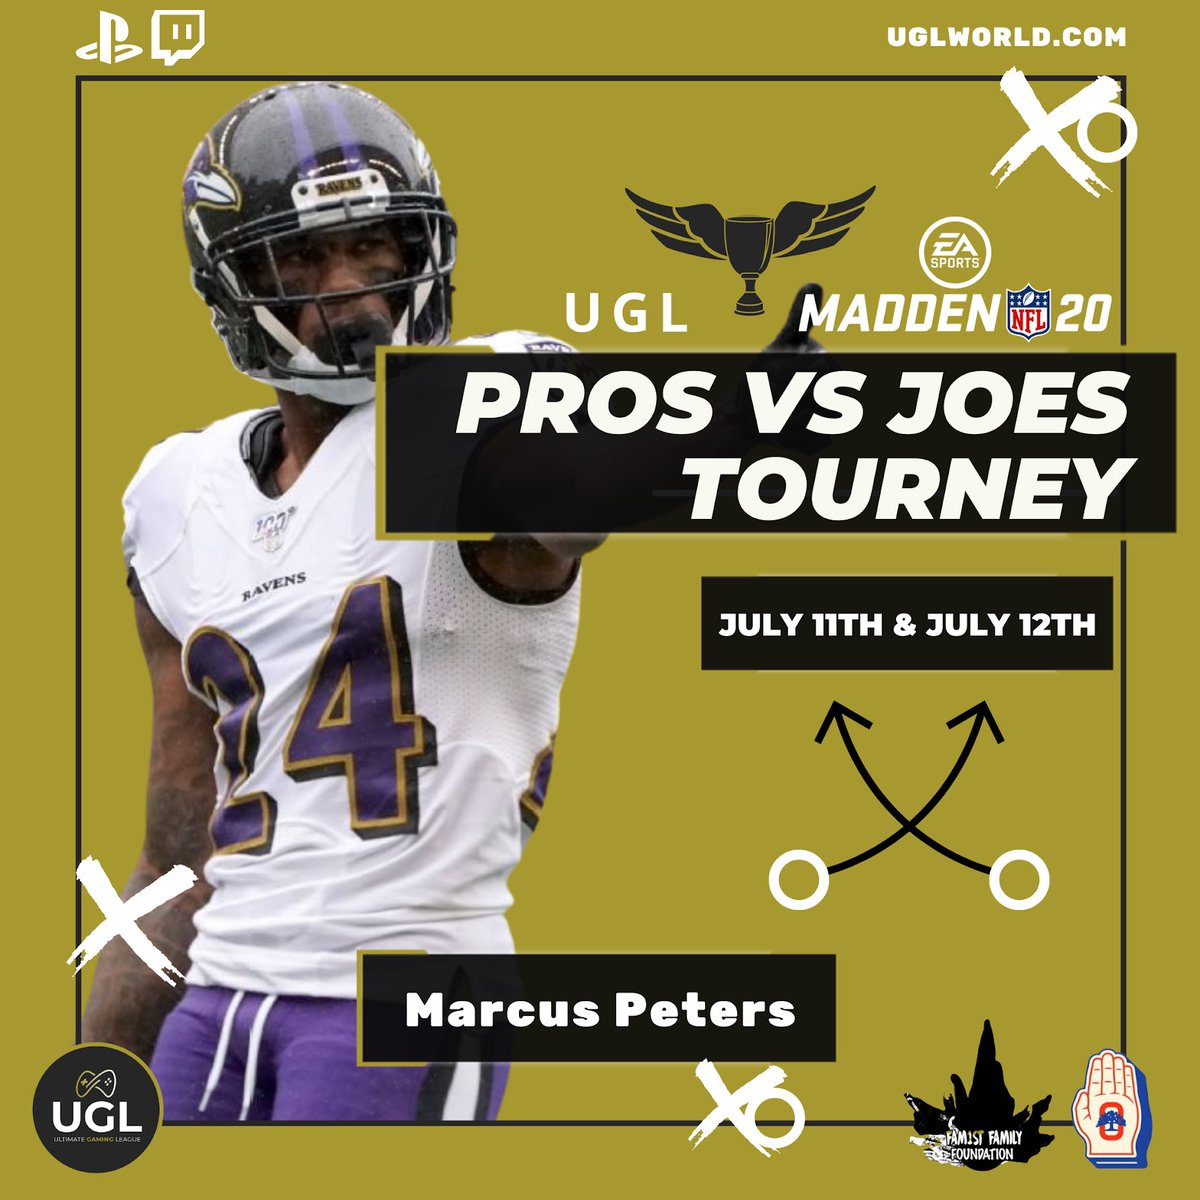 Marcus Peters, Cornerback for Baltimore Ravens, on the pro roster — Pros Vs Joes Tourney July 11th & 12th   The #ProsVsJoes tournament donations will provide support to Covid-19 Relief Funds via: @theoaklandpledge @fam1stfam  #UGL #ProsVsJoes #Covid19Relief #FamilyFirst pic.twitter.com/Og0OJvTZ4s